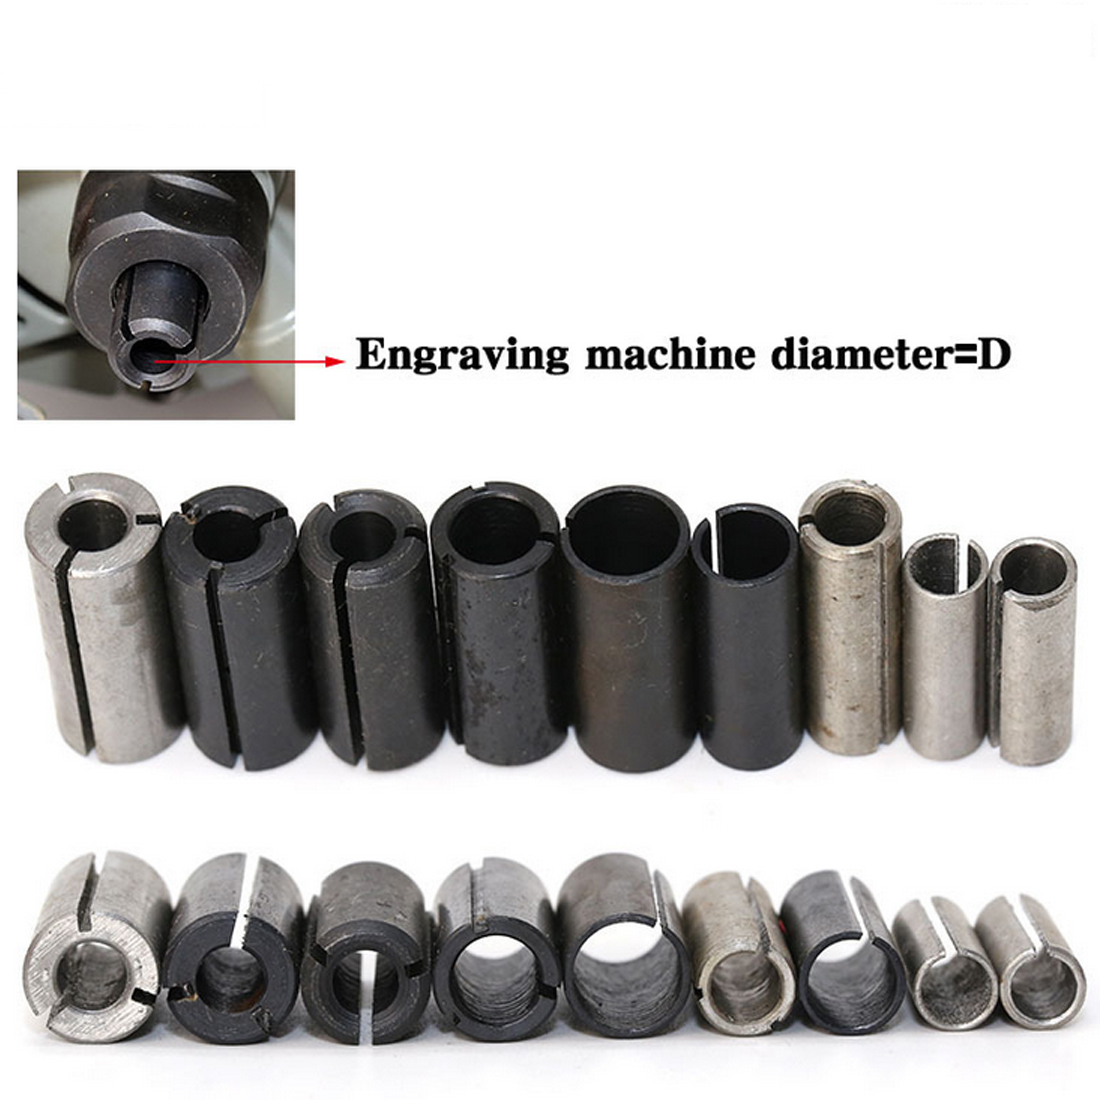 1 Pc High Precision Adapter Collet Shank Cnc Router Tool Adapters Holder Black For Rotary Tool